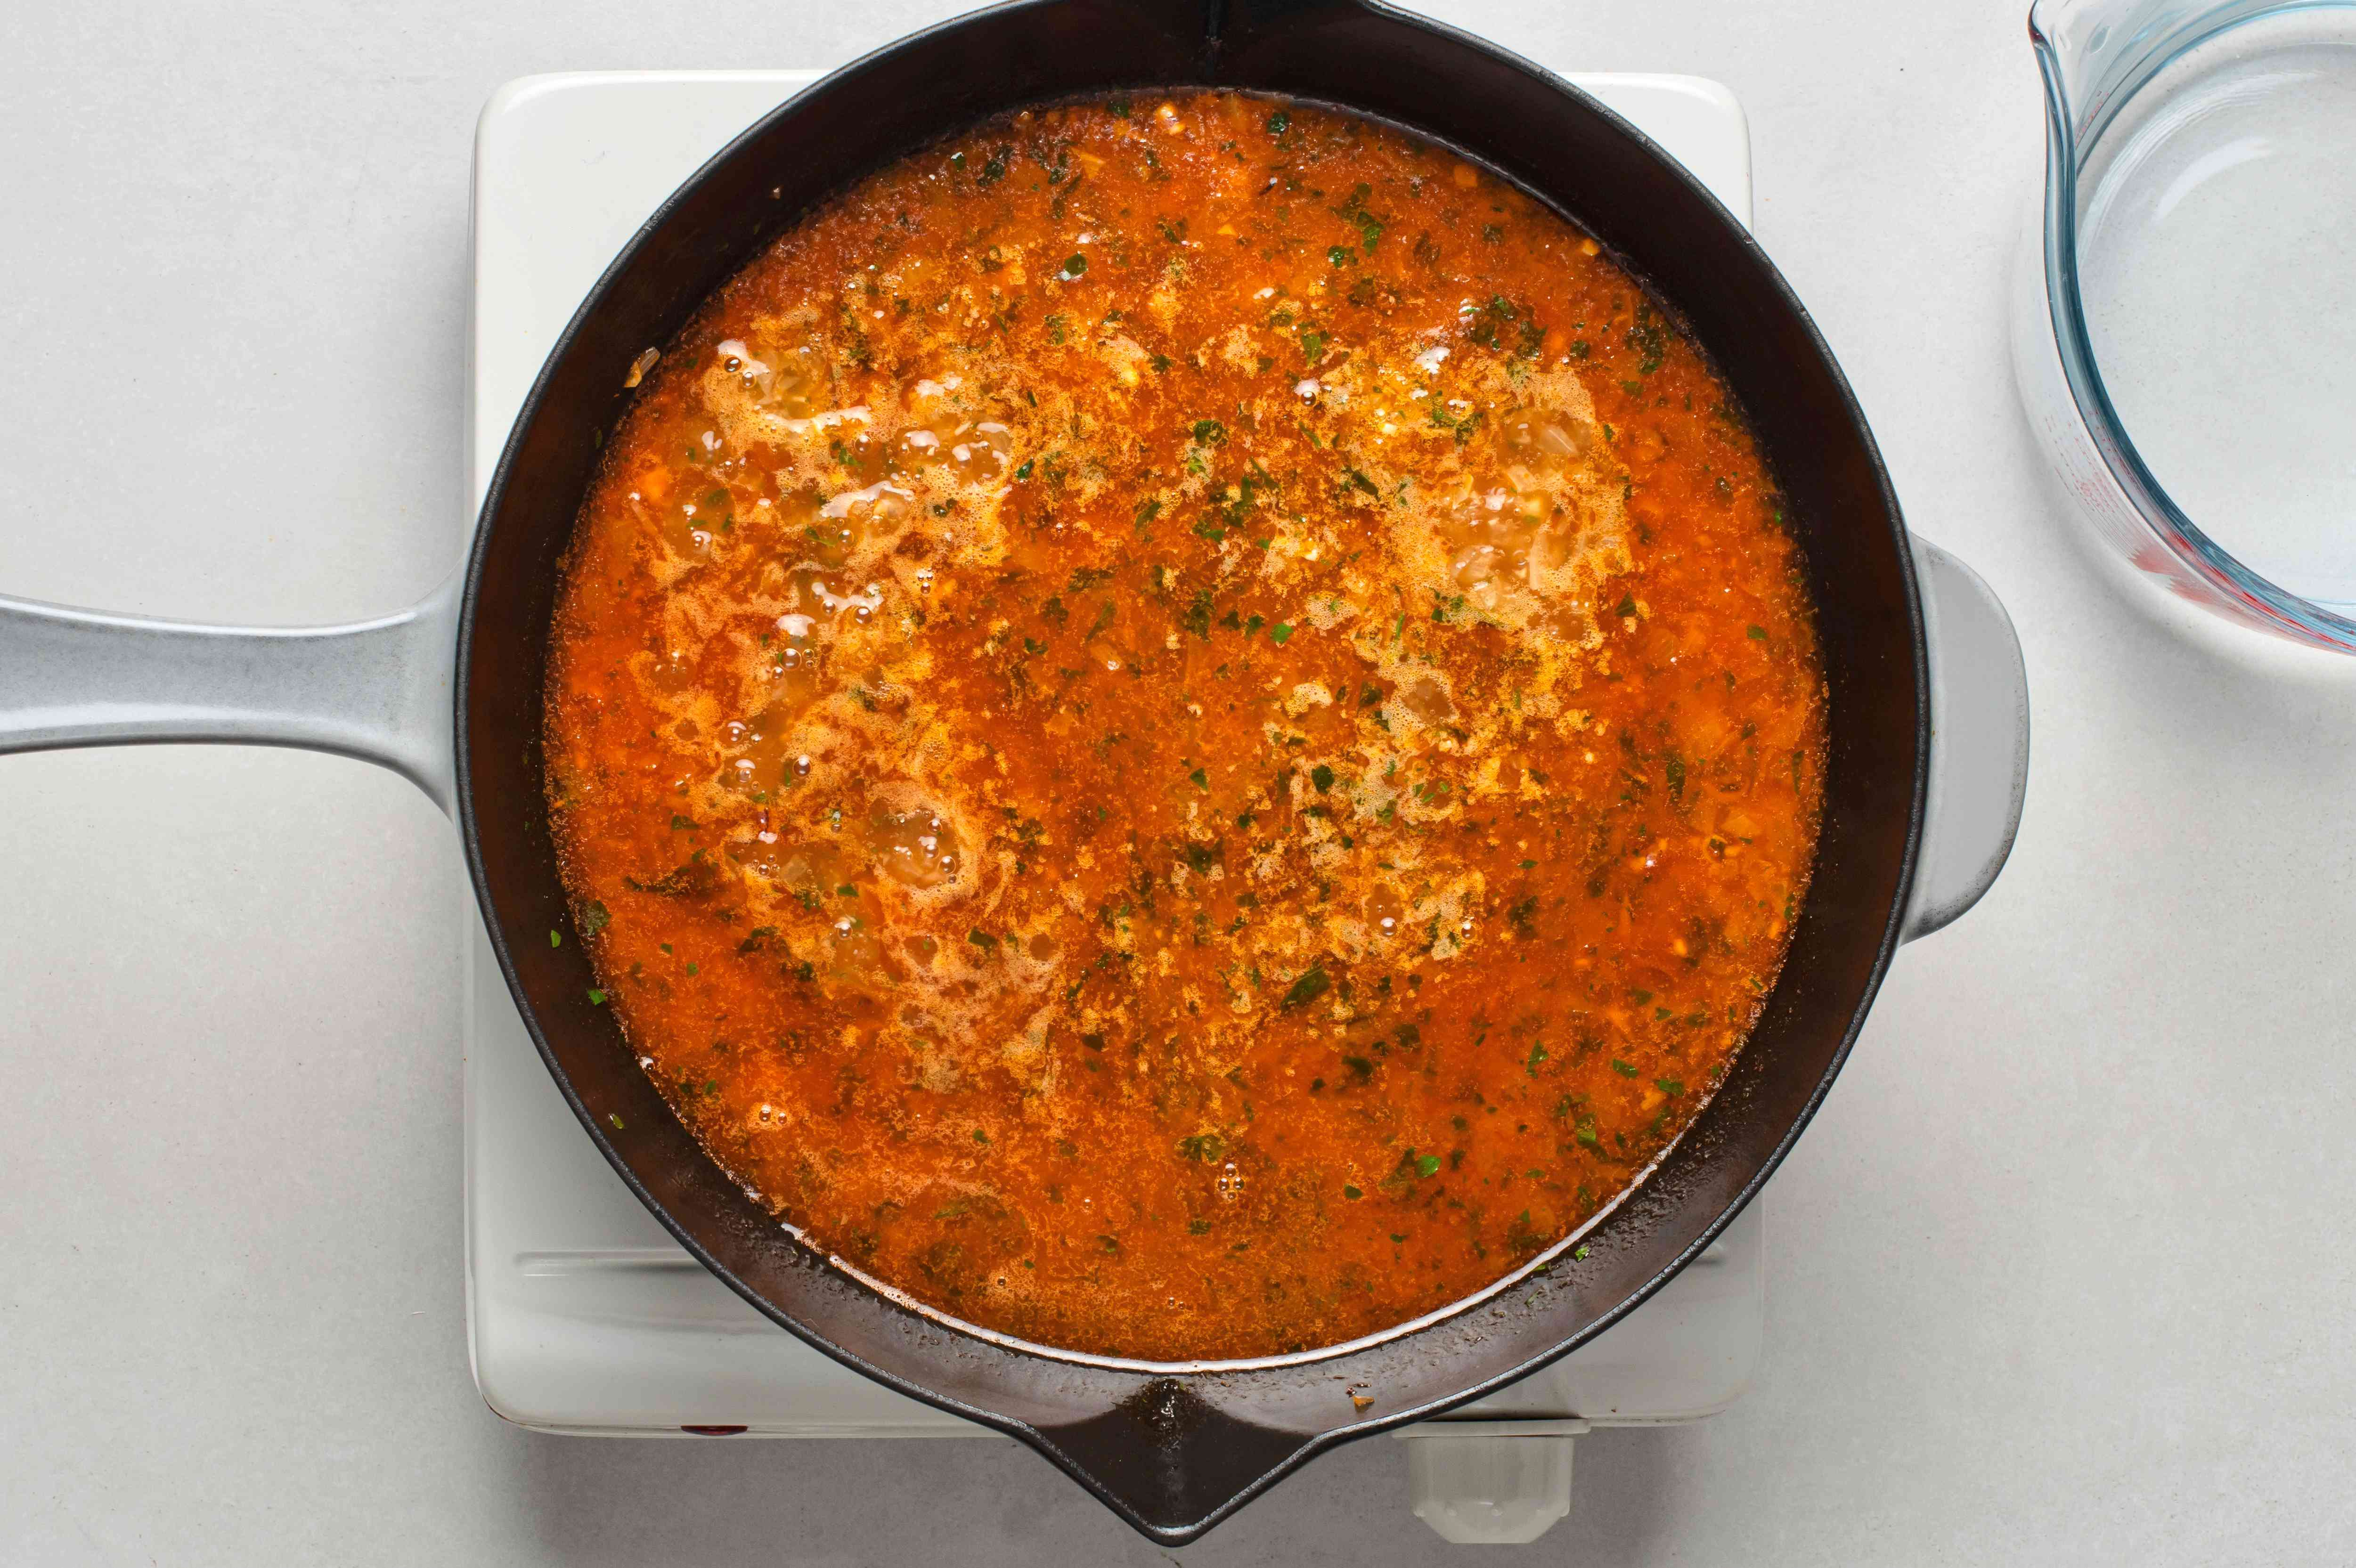 A pan with tomato mixture boiling